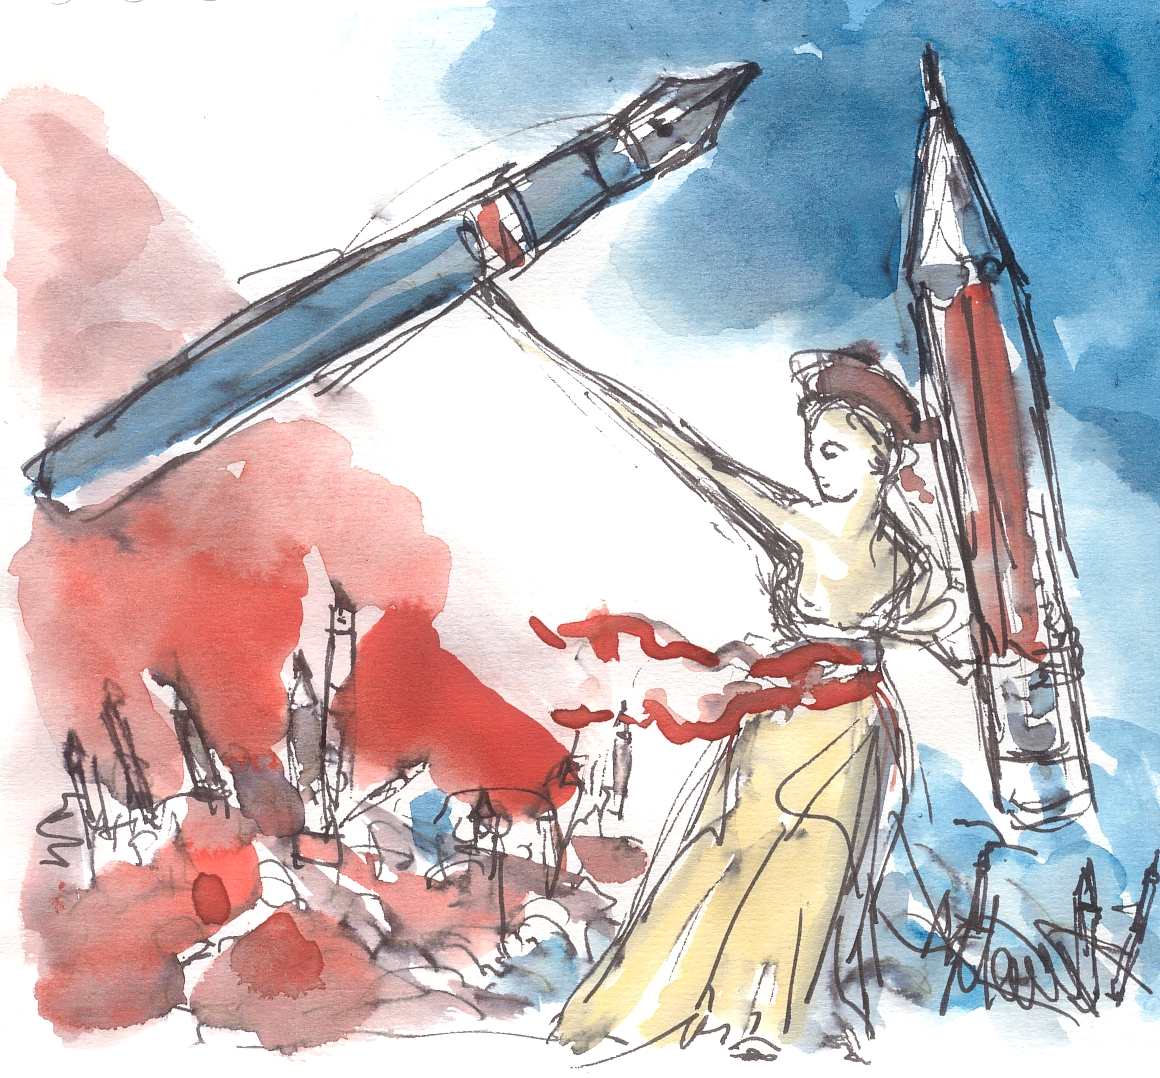 Maxine Dodd: Je suis Charlie: pick up a pencil